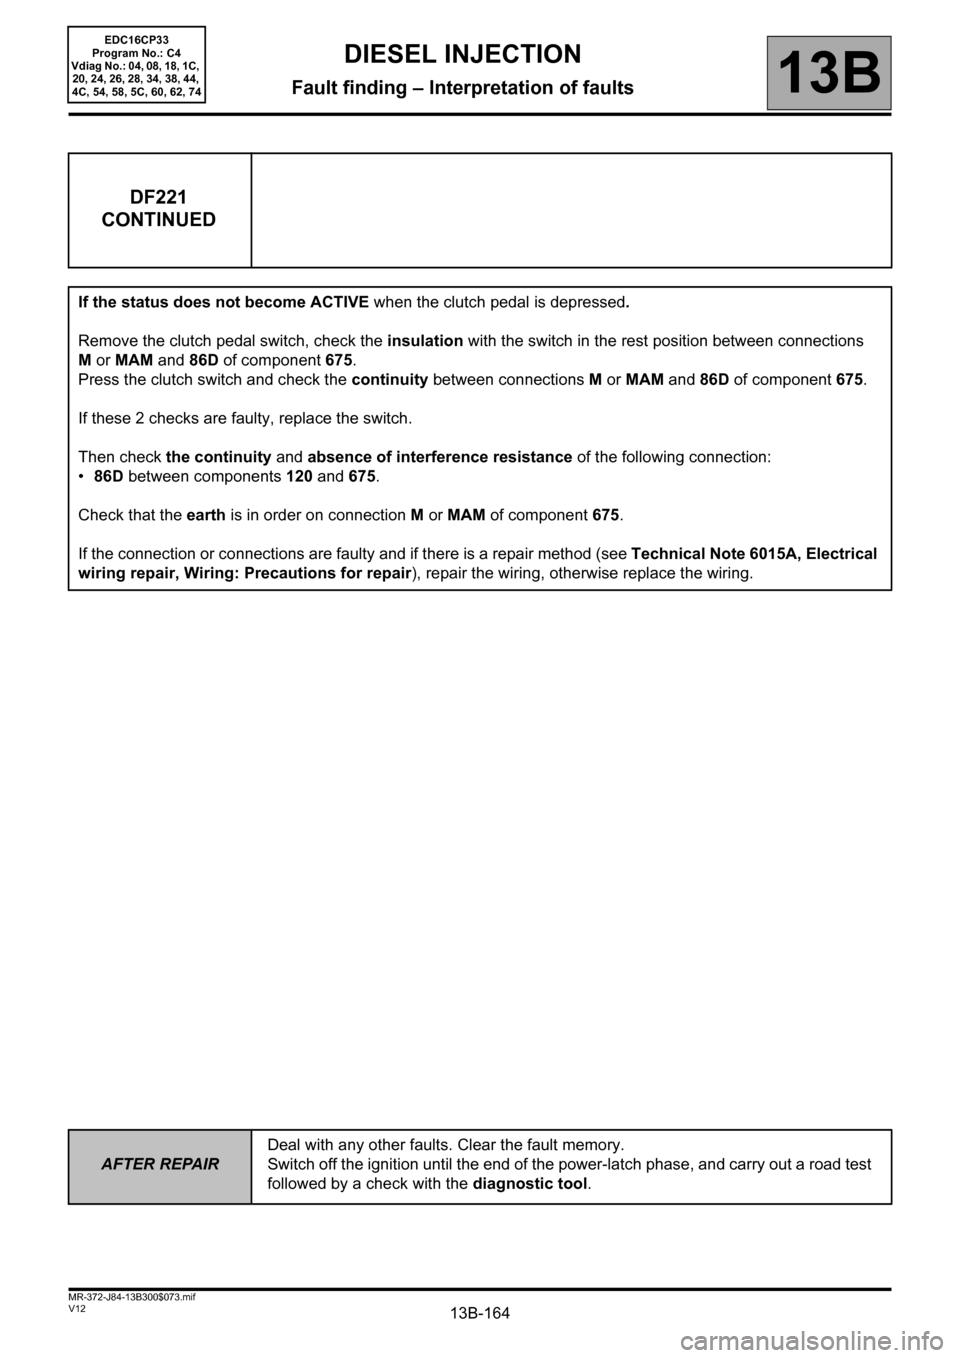 RENAULT SCENIC 2012 J95 / 3.G Engine And Peripherals EDC16CP33 Workshop Manual, Page 164